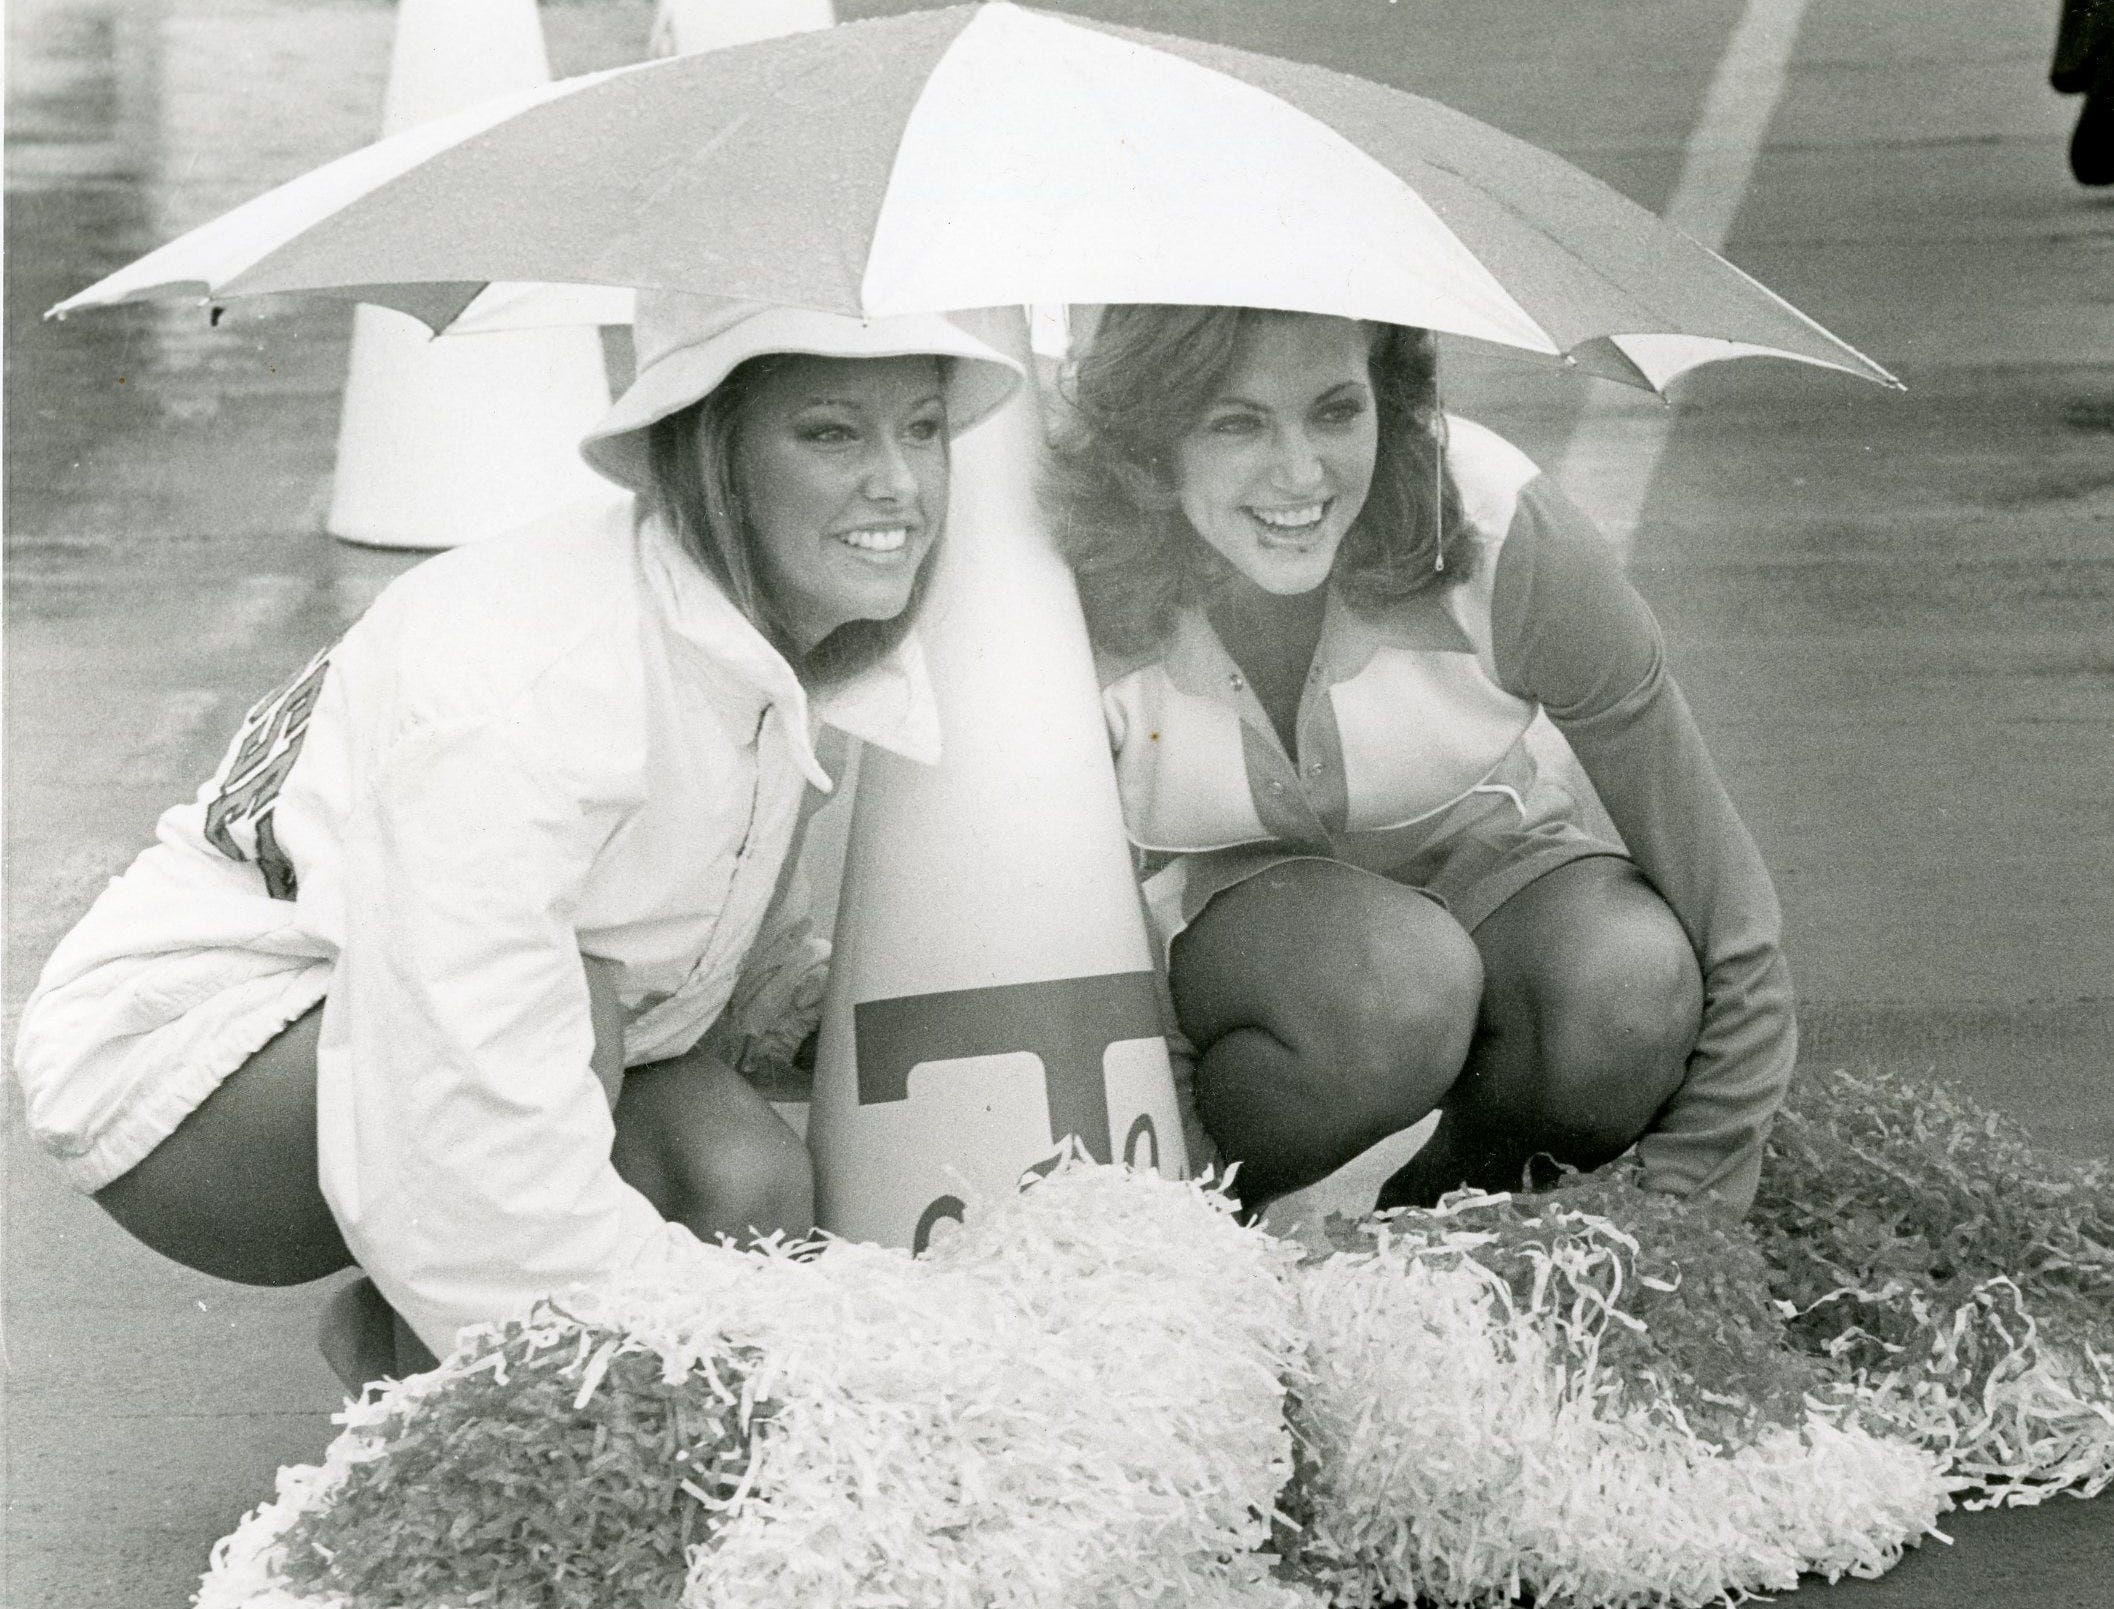 UT cheerleaders Pam Johnston and Candace Cullum shield themselves from the rain under an umbrella, October, 1977.